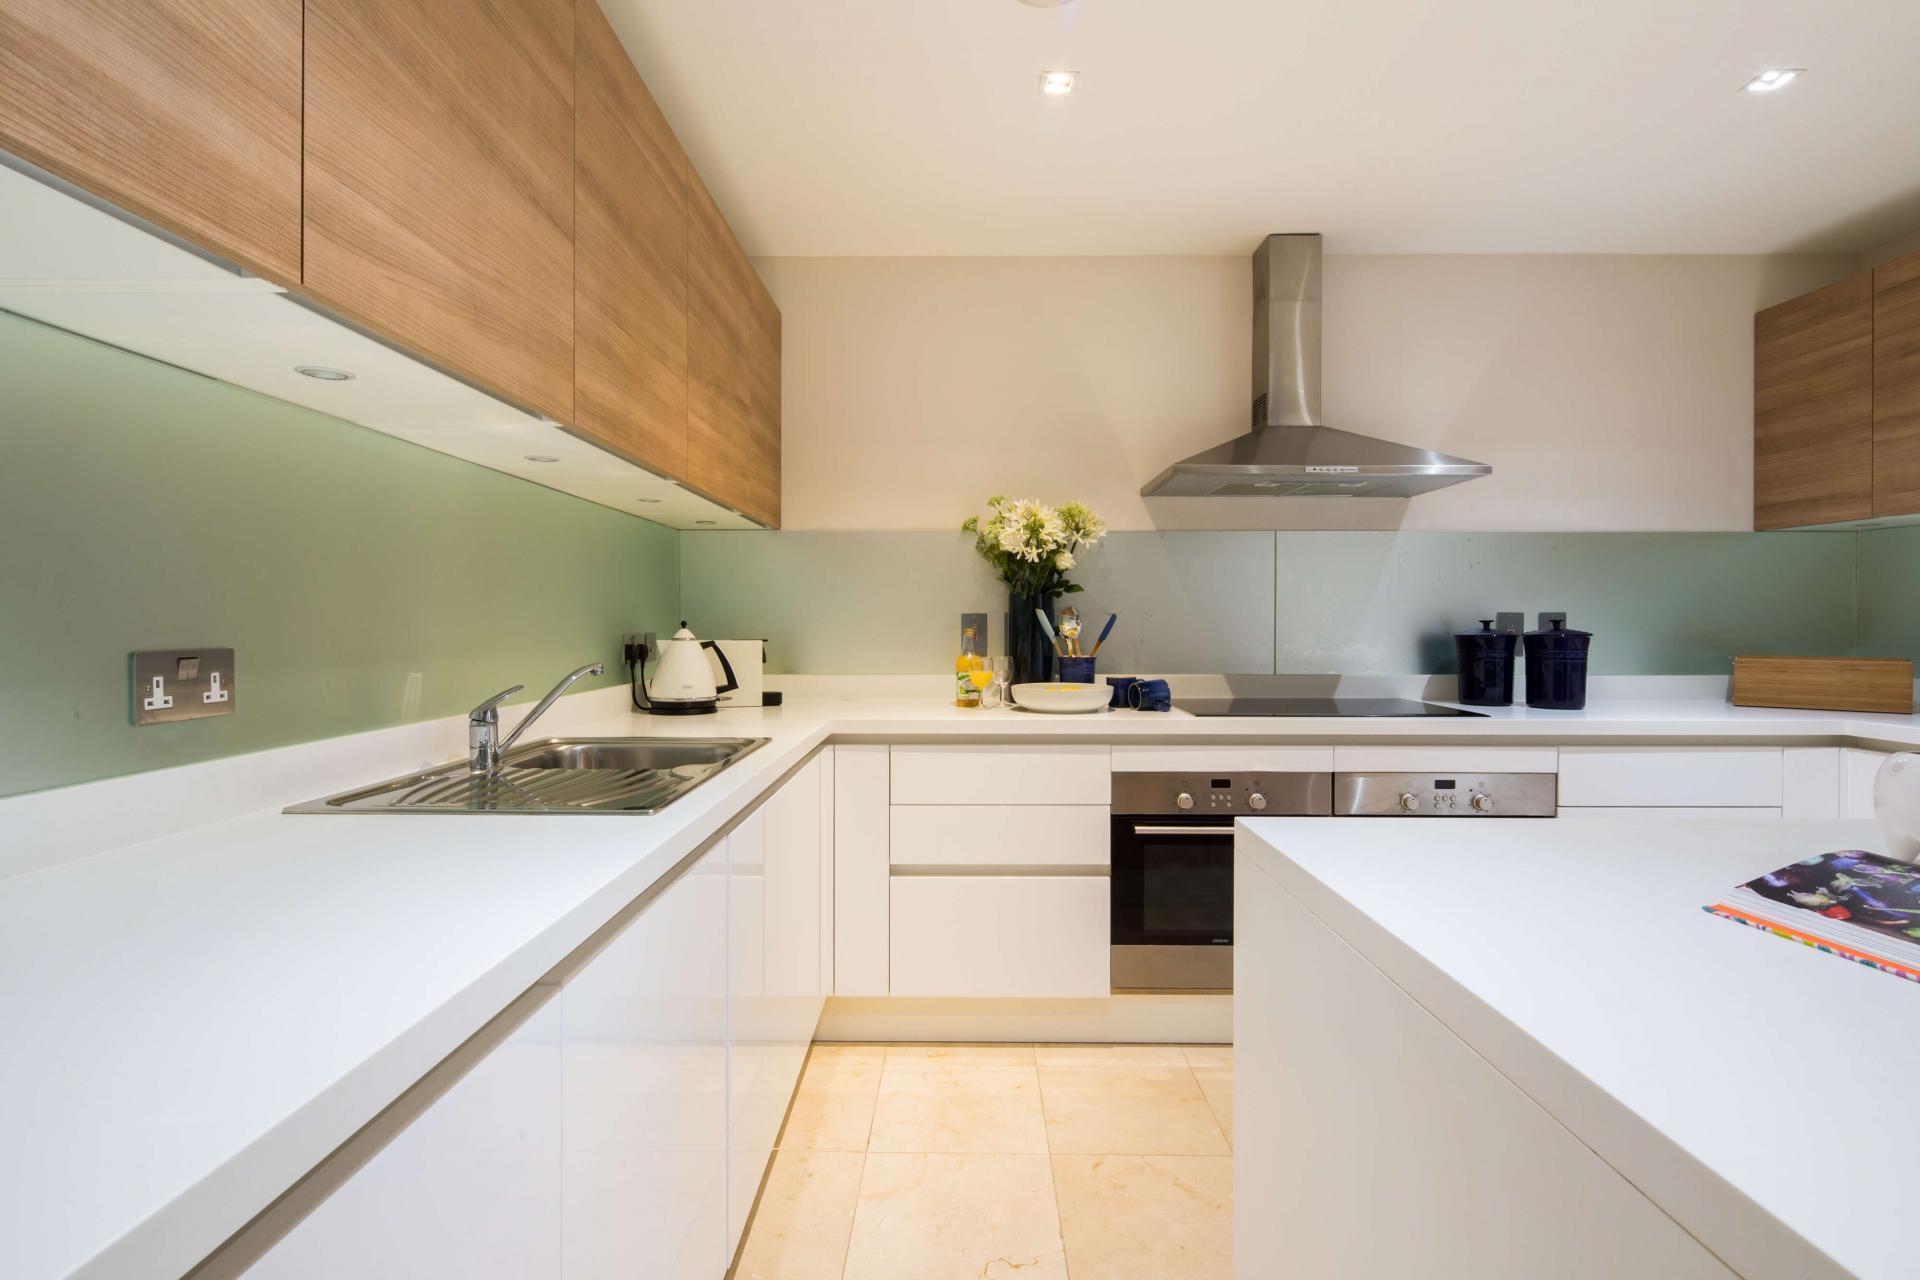 Sleek kitchen at Meritas Court Apartments, Bayswater, London